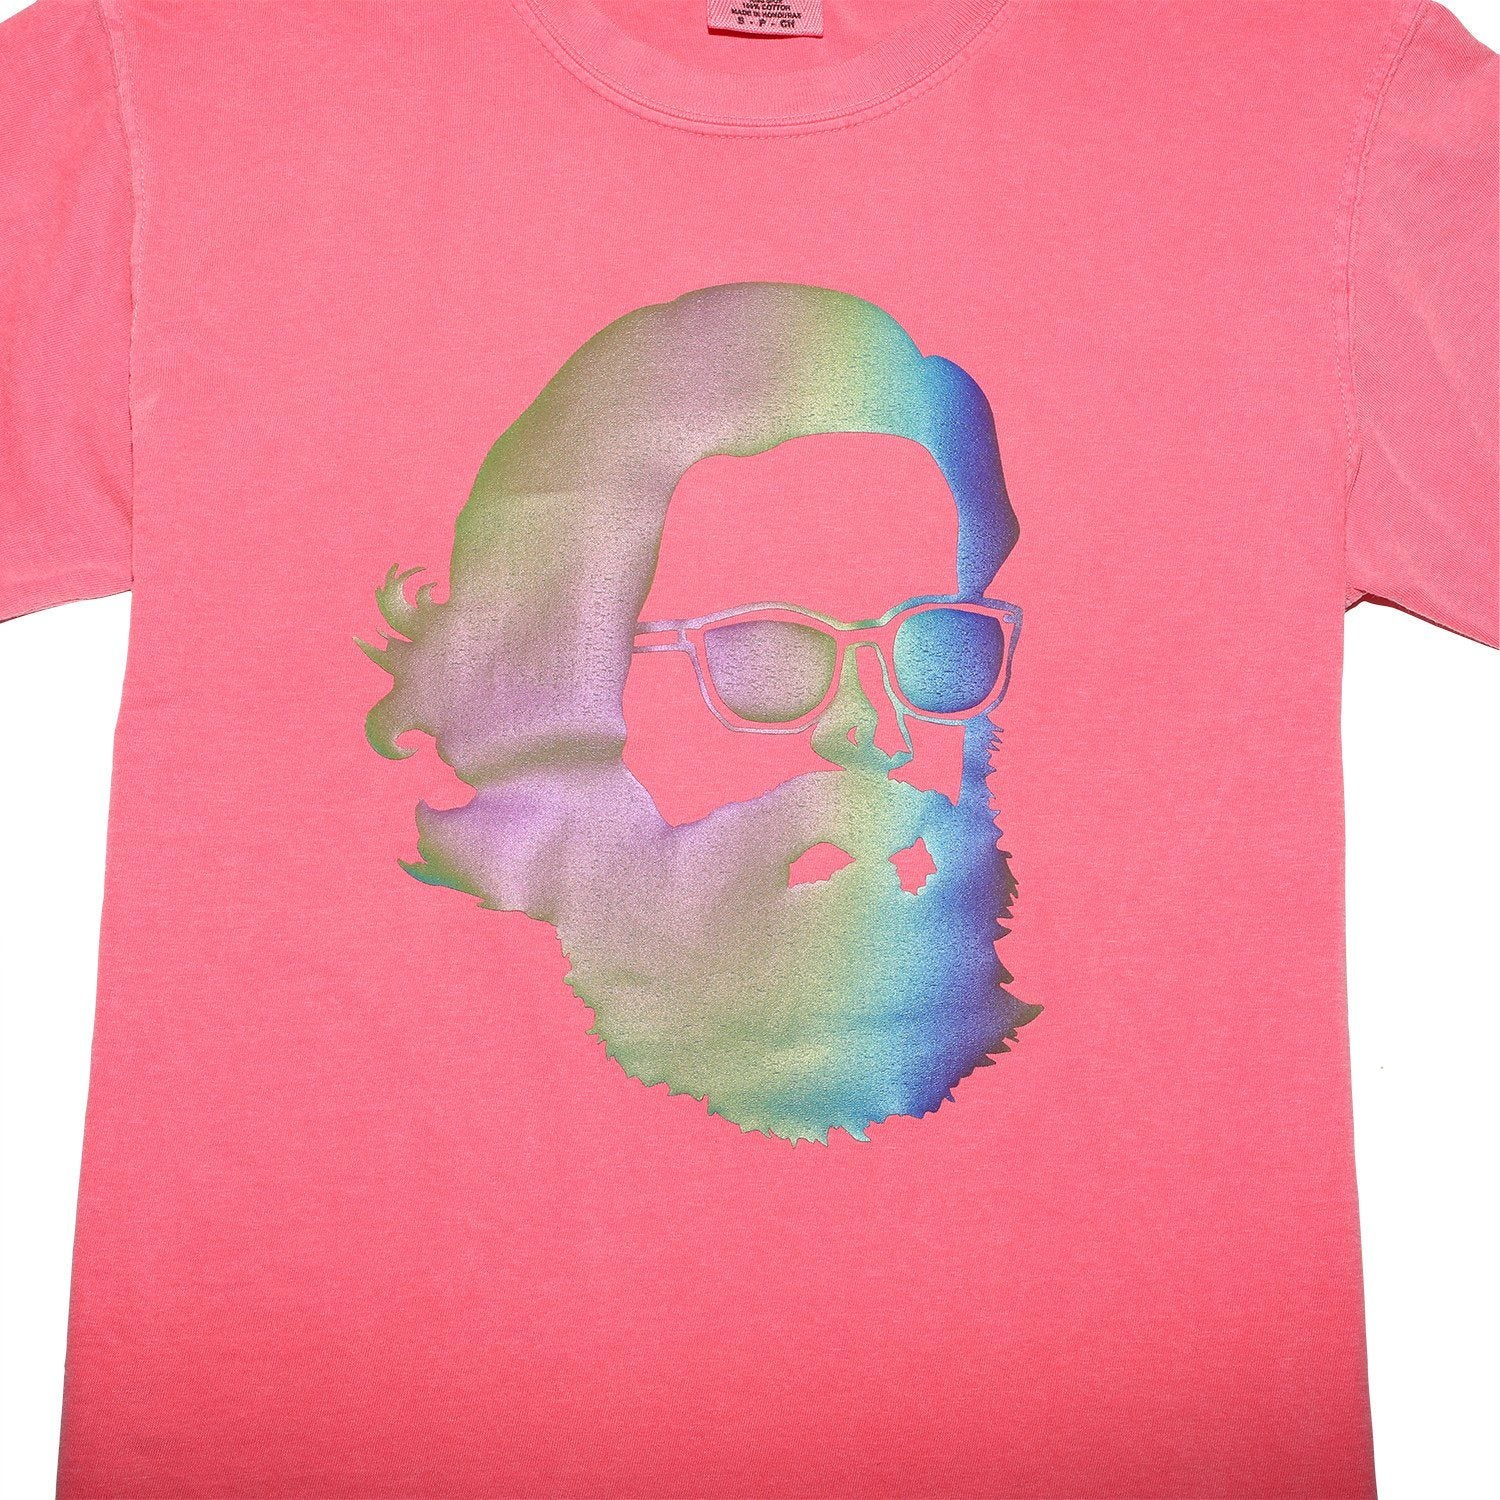 'Misty Face' Tech Wear T-Shirt - Rainbow Reflective